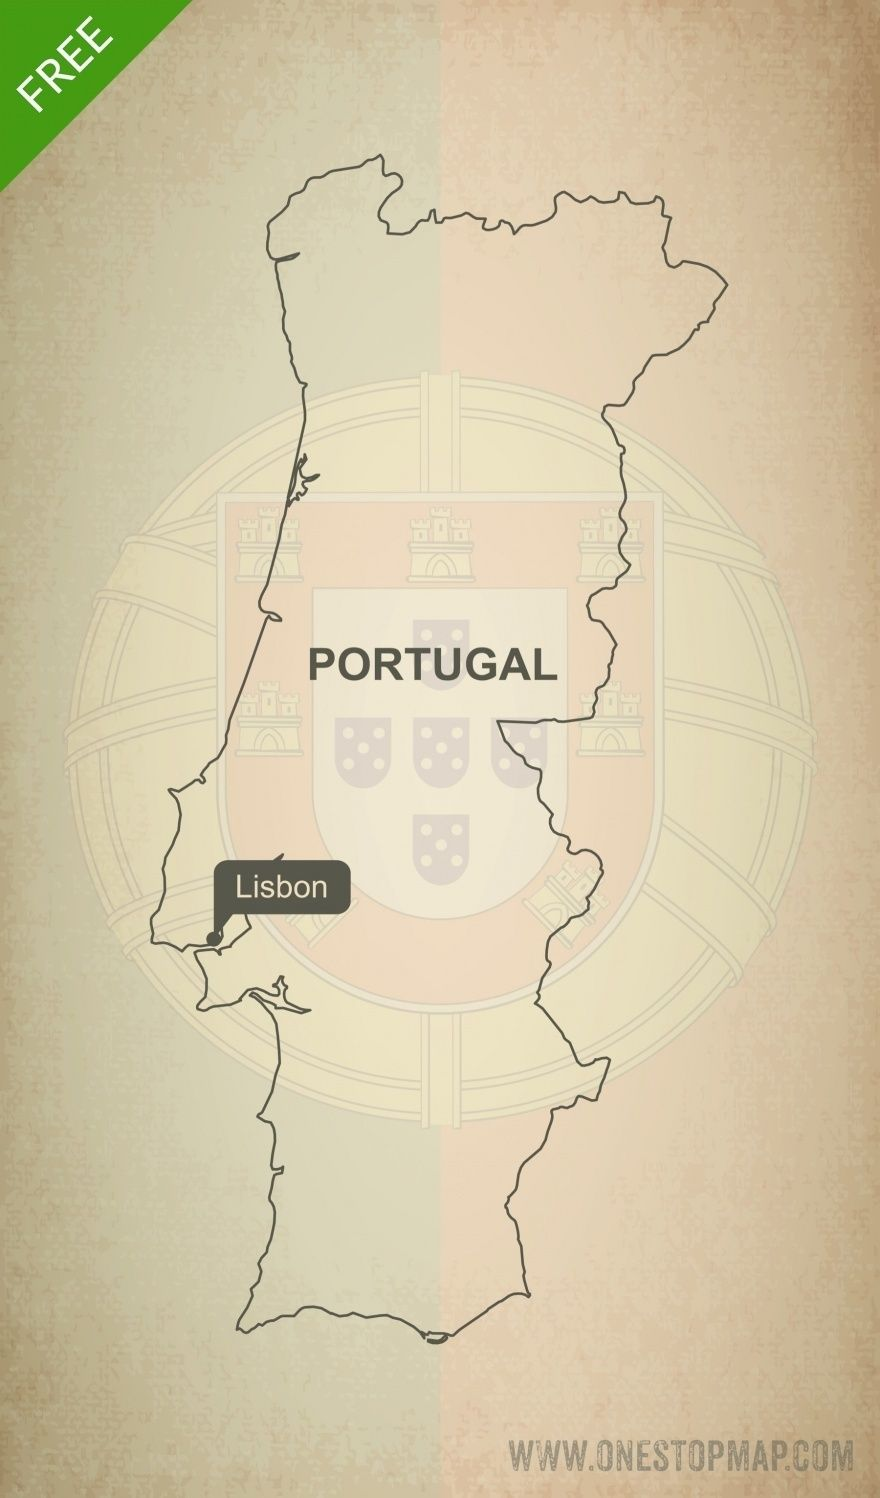 Free vector map of Portugal outline Free